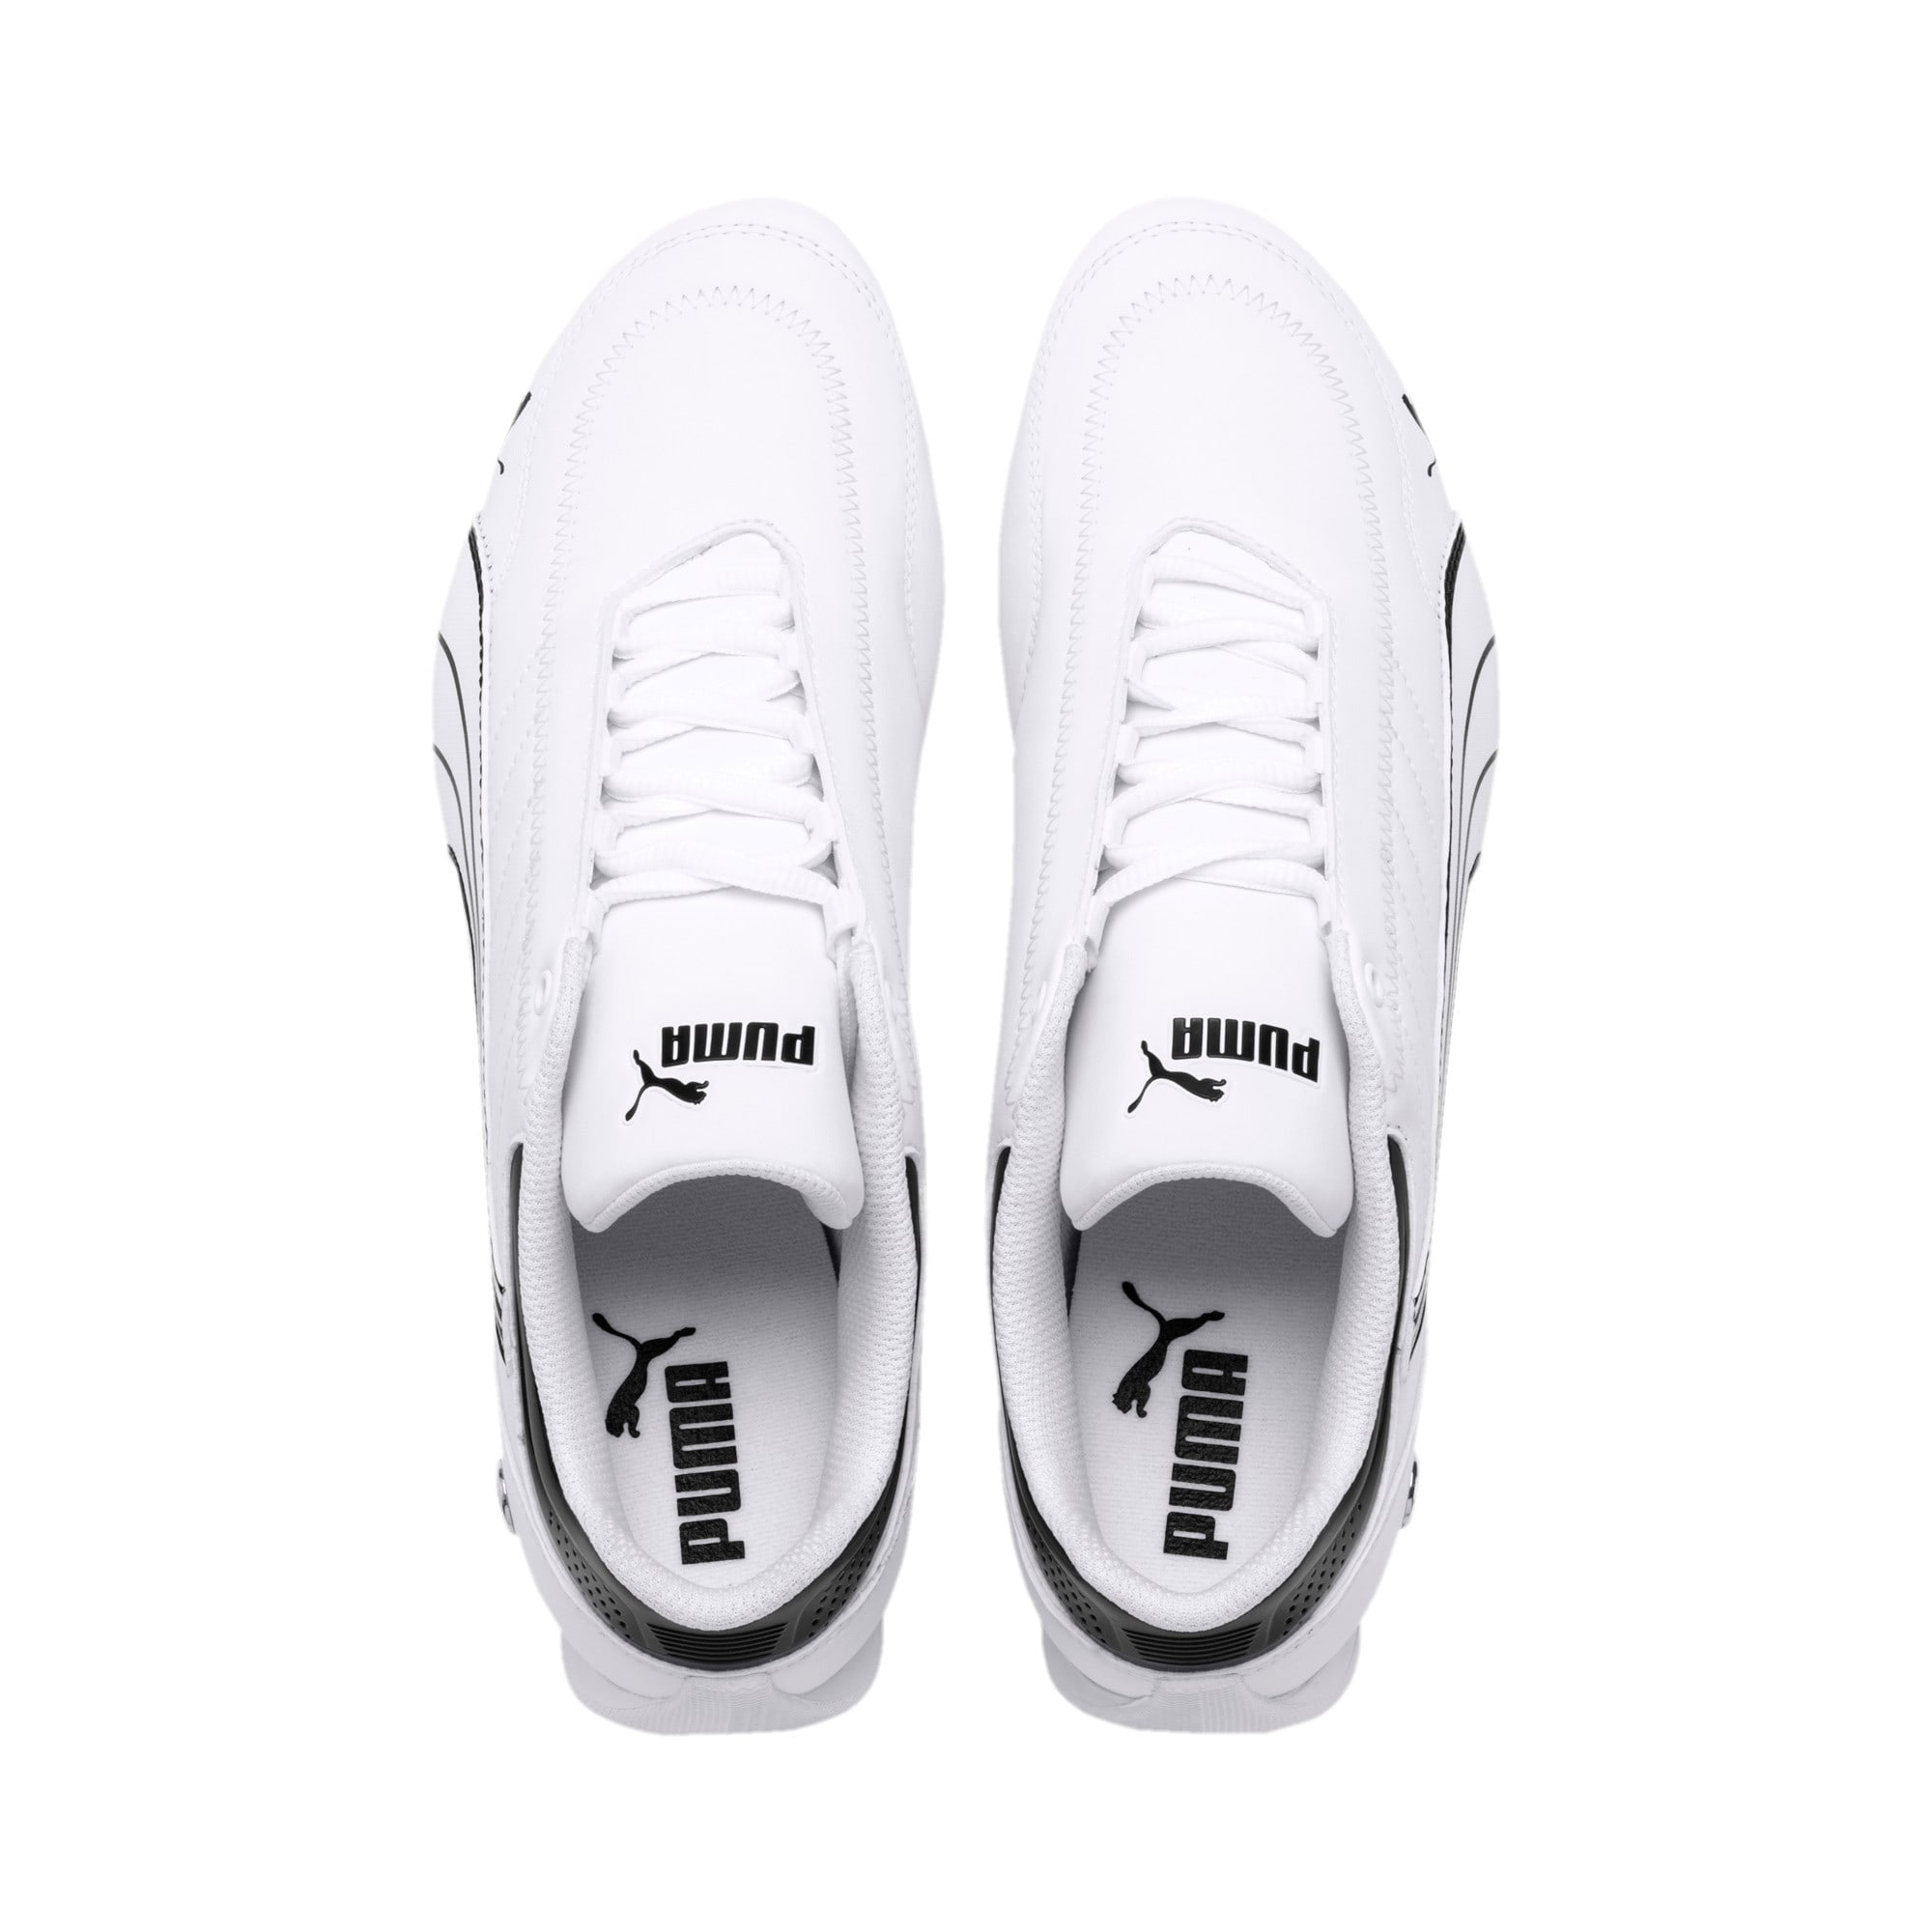 Miniatura 7 de Zapatos BMW M Motorsport Future Kart Cat, Puma White-Puma Black, mediano